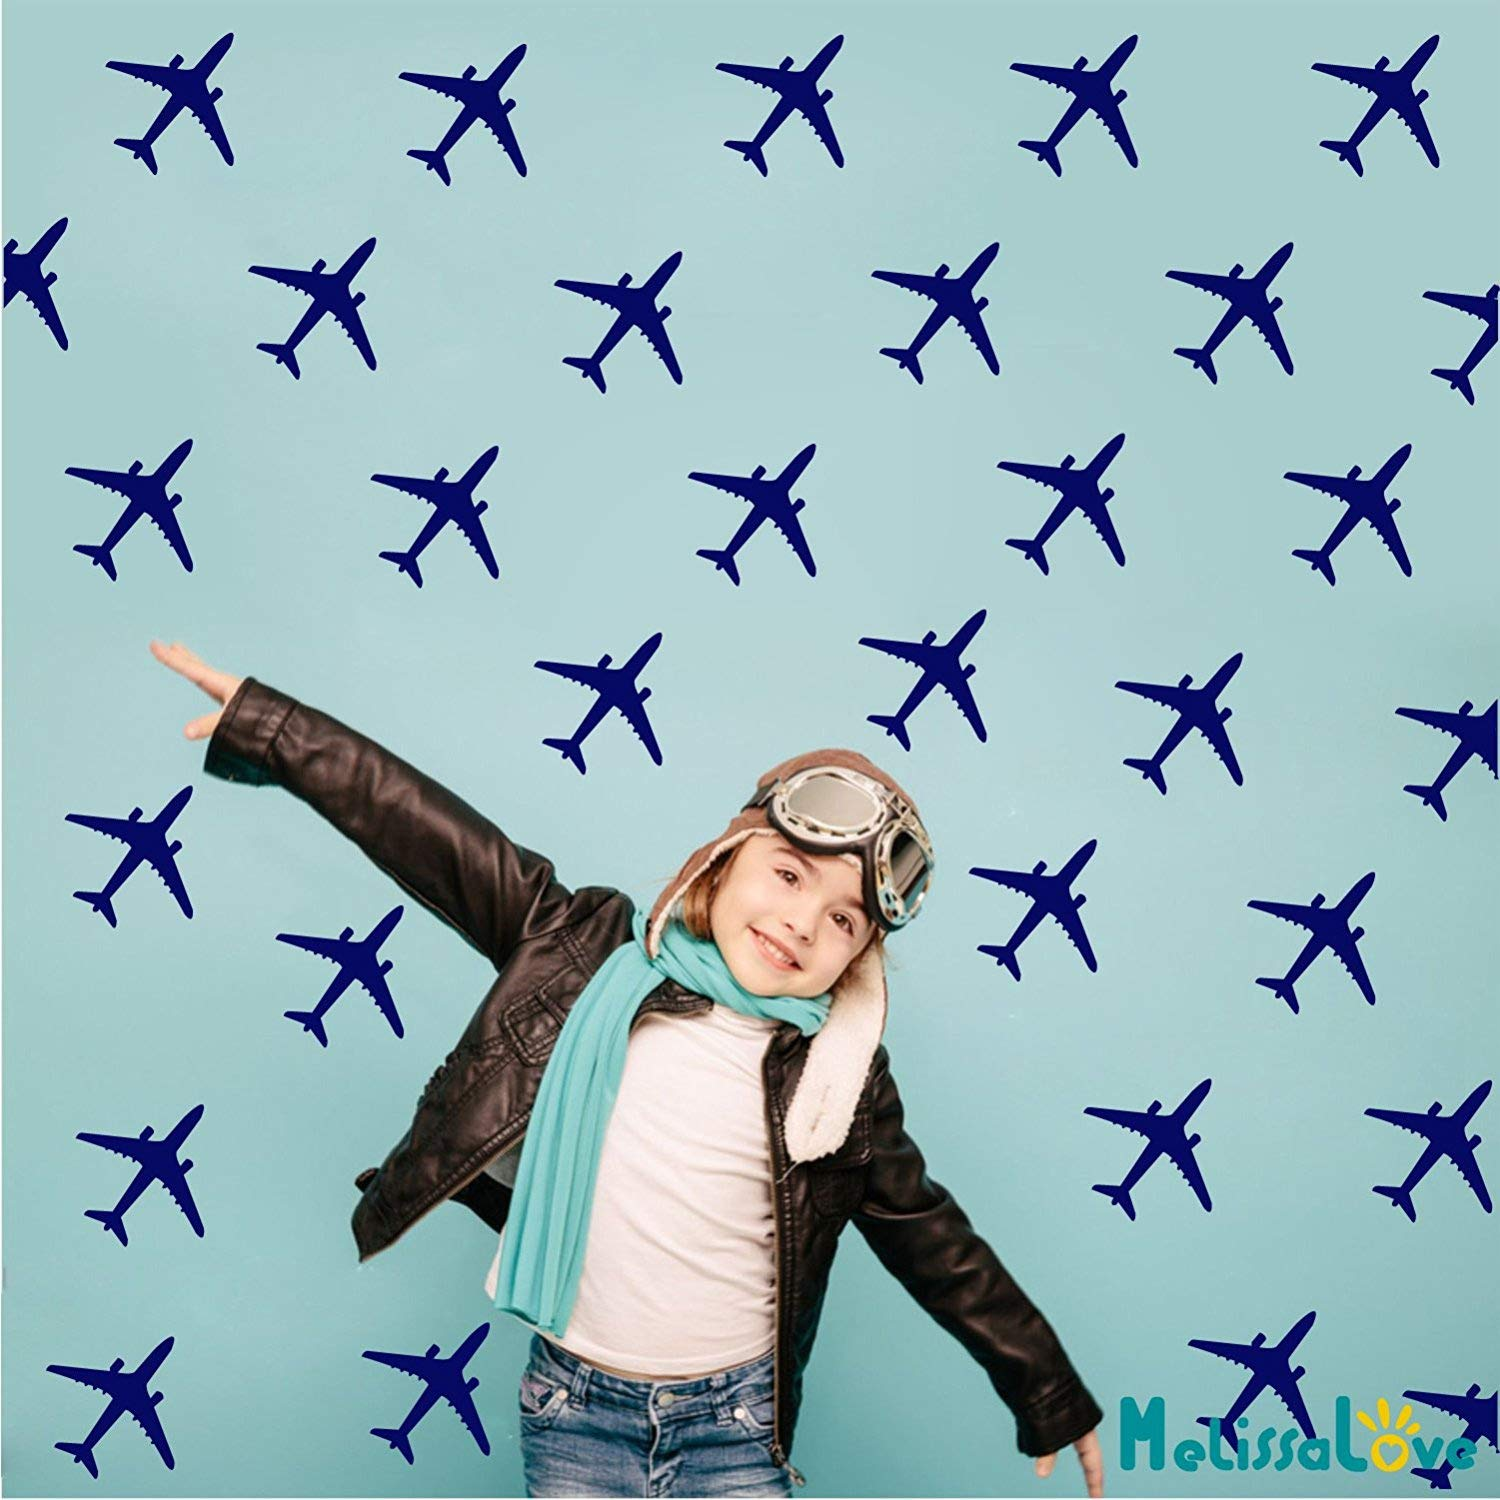 Melissalove 24pcs/Set Airplane Wall Pattern Wall Decals DIY Wall Decor Stickers for Kids Room Boy Bedroom Home Decor Mural A430 (Dark Blue)